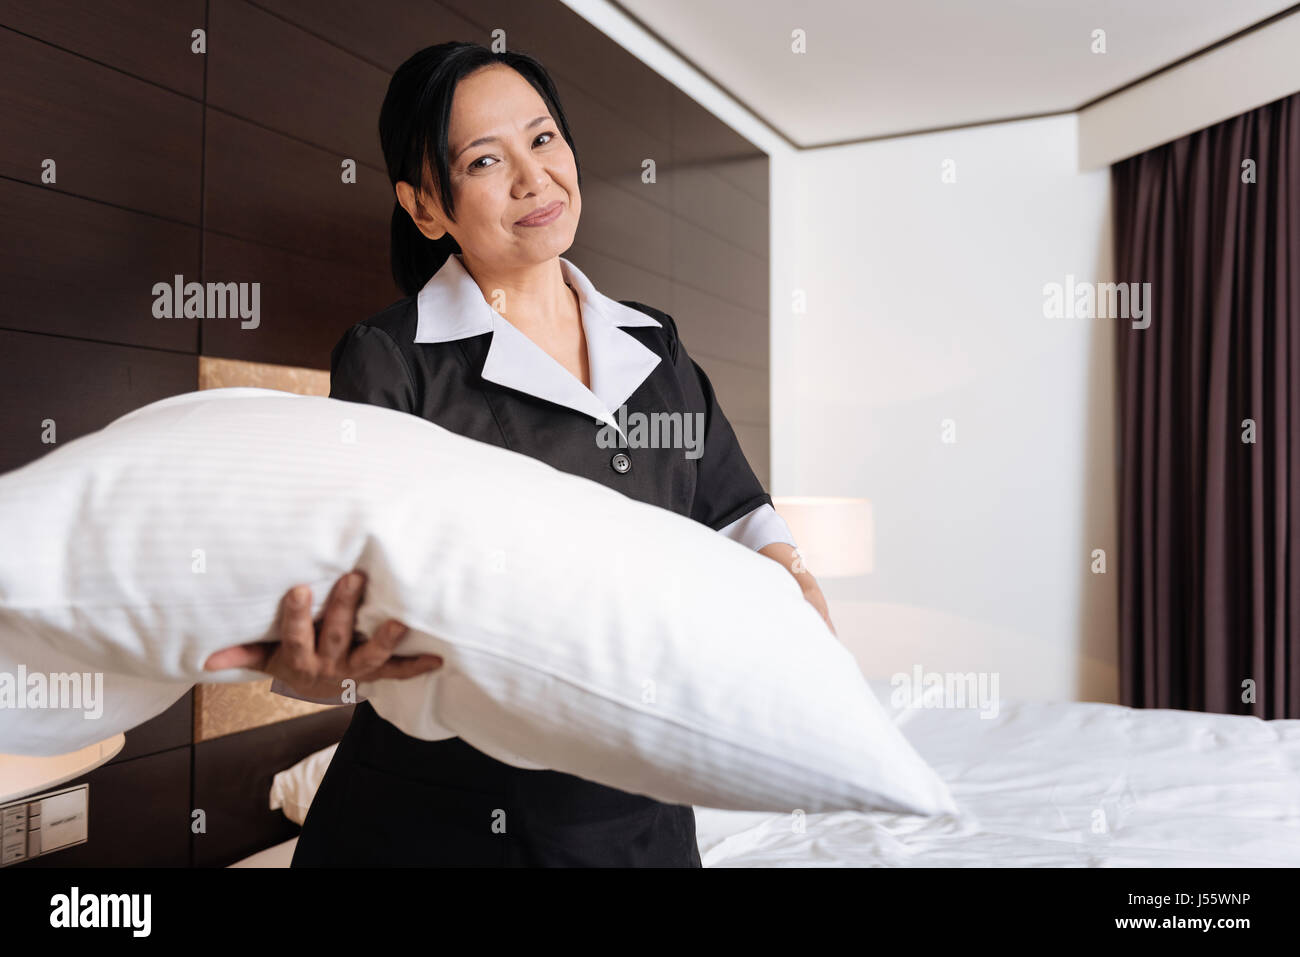 Joyful Asian hotel maid standing in the hotel room - Stock Image